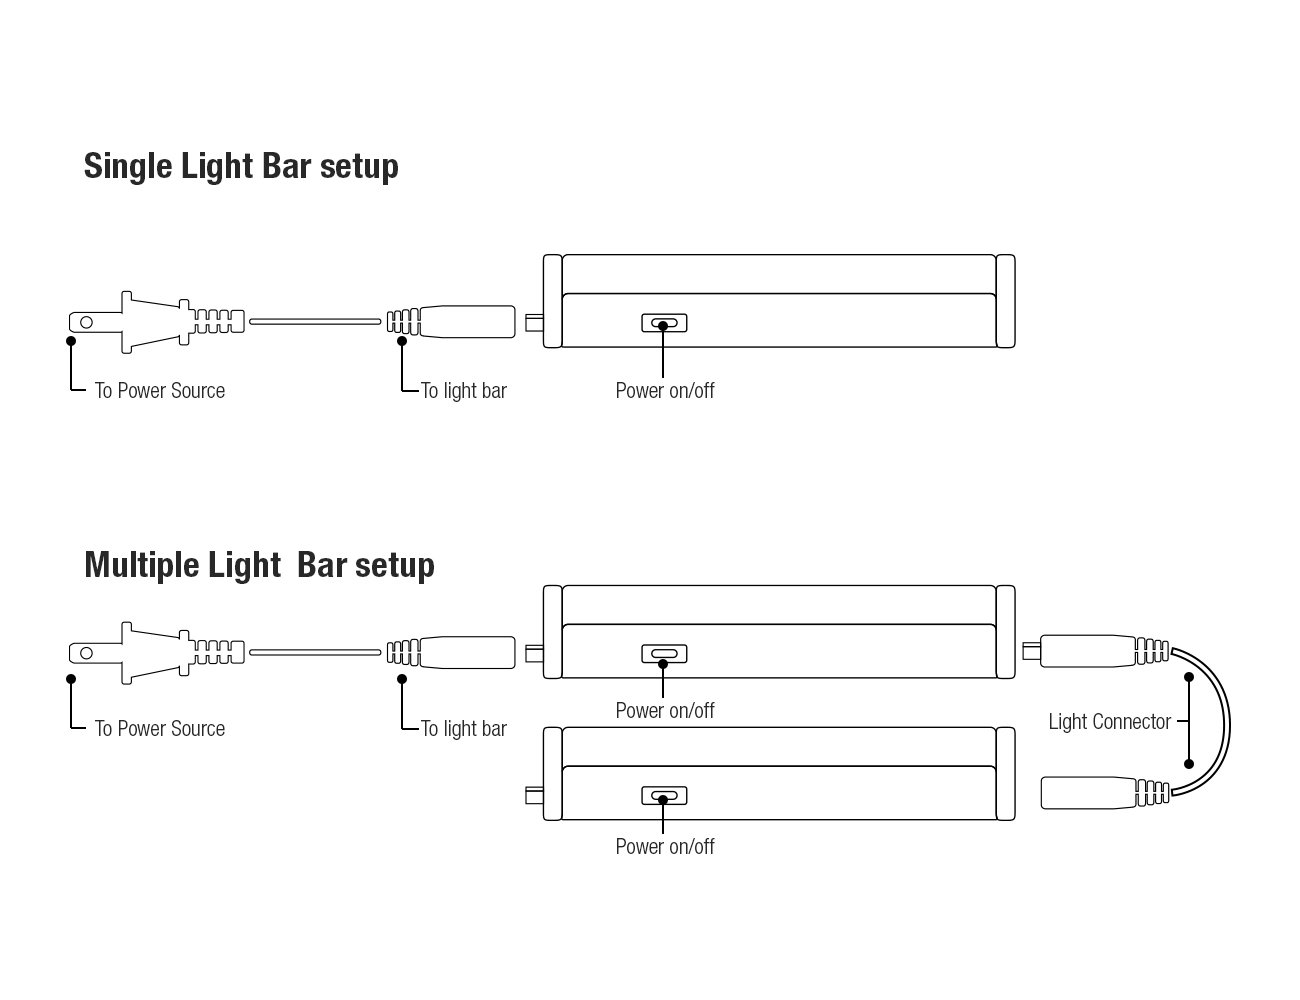 Led Concepts Power Cord For Light Bar Supply 250v Lcd Tv Schematics In Addition Circuit Diagram Further